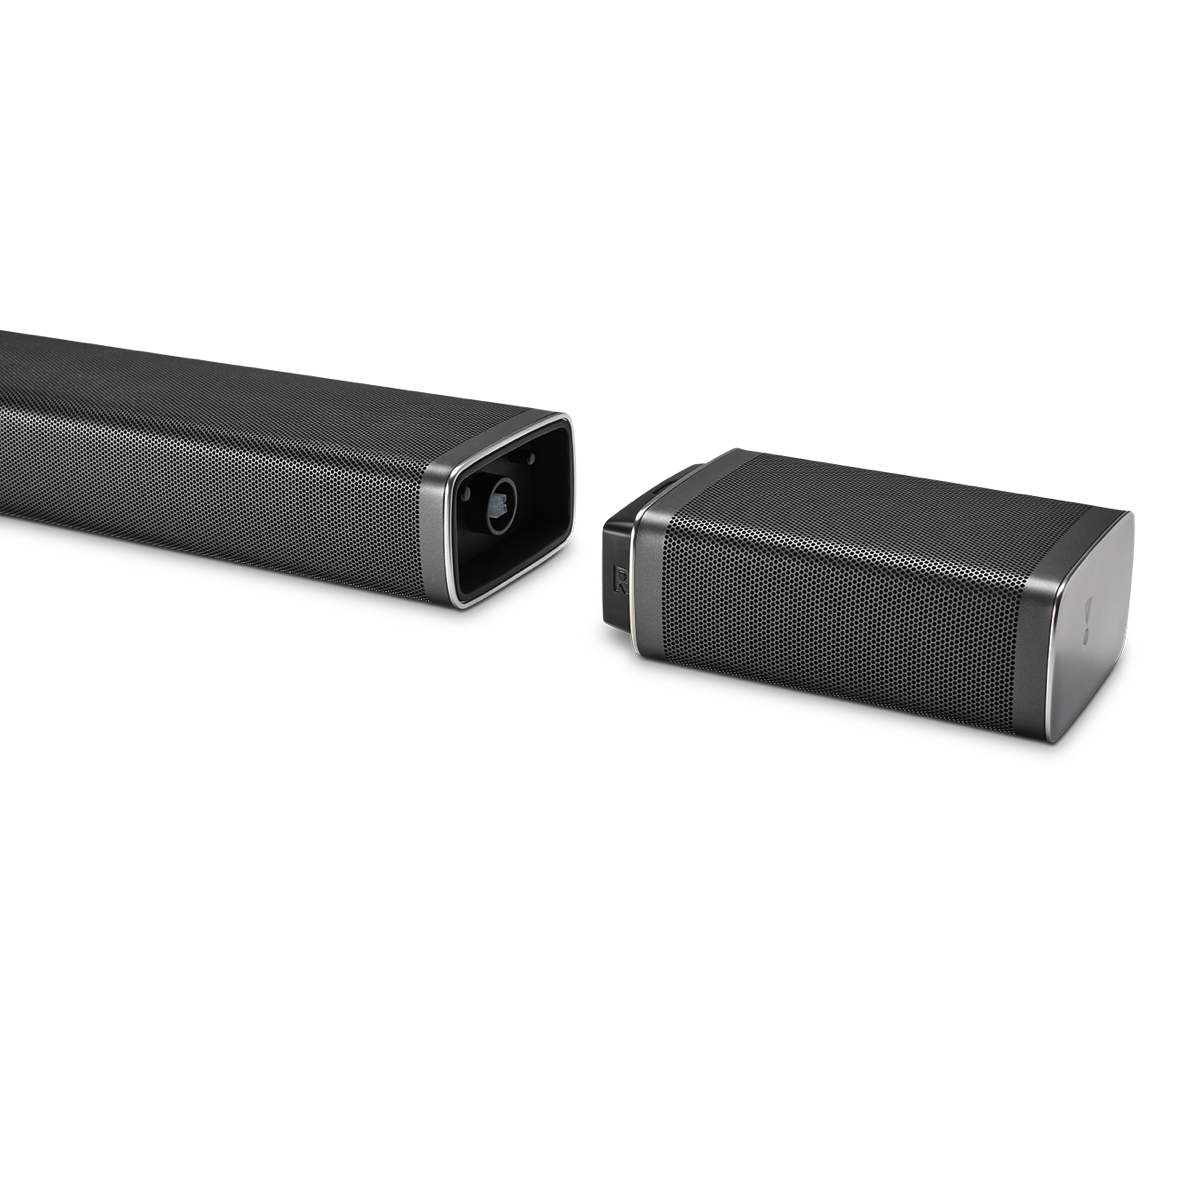 JBL Bar 5.1 - Soundar, Subwoofer and Detachachable Surrounds - AVStore.in